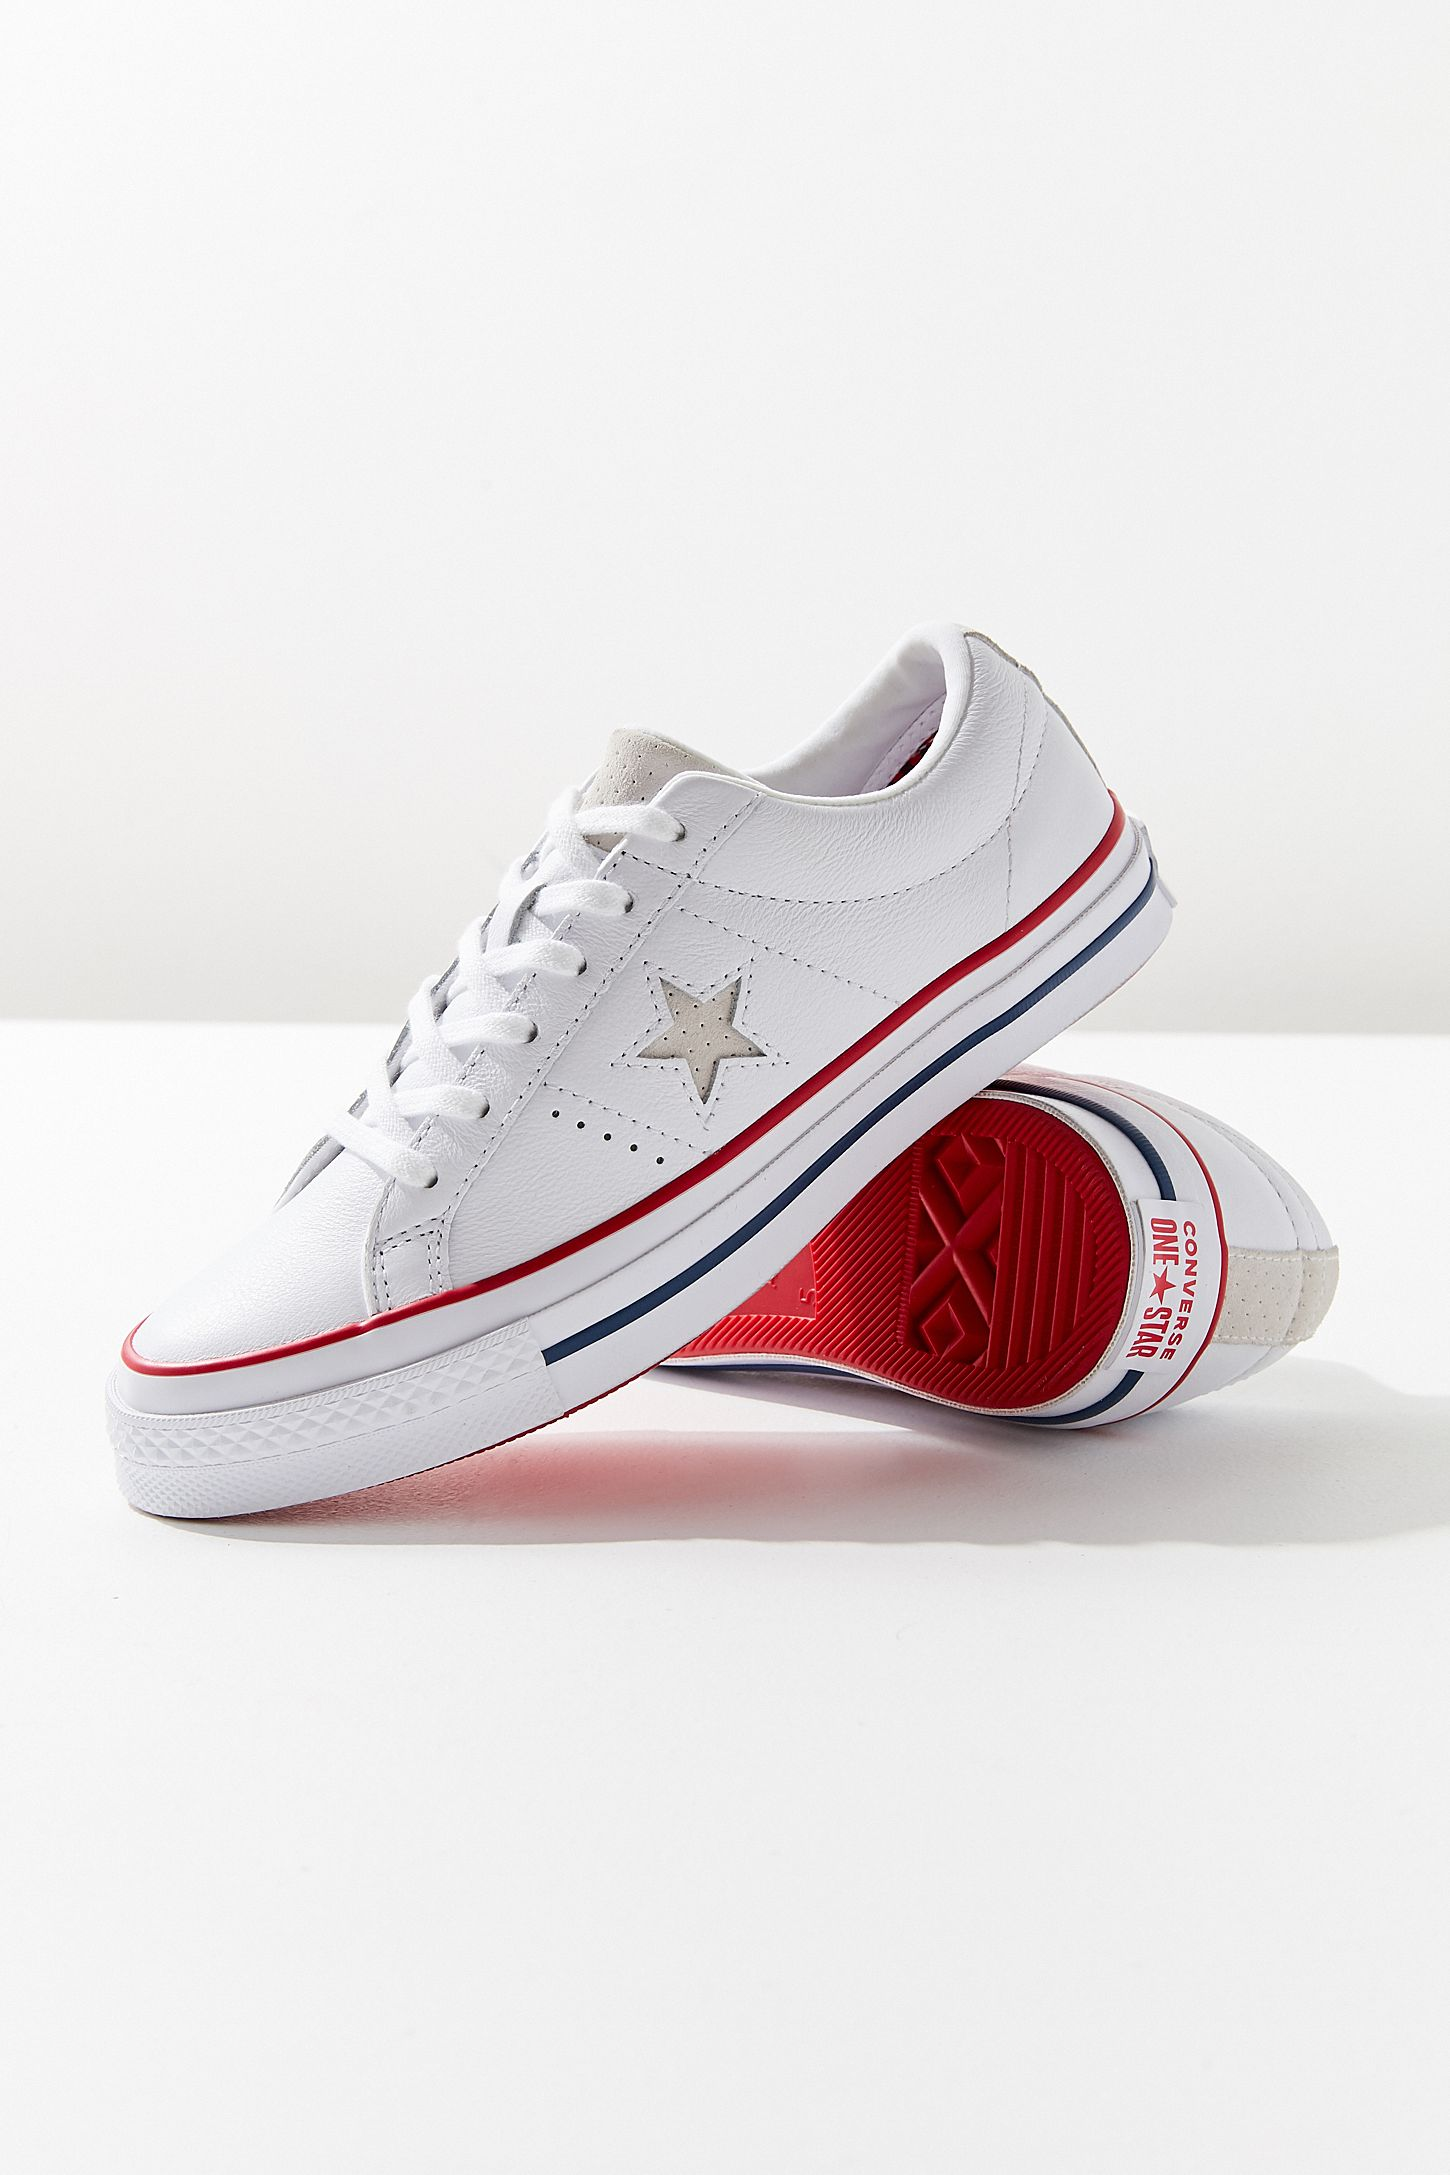 Converse One Star Leather Tennis Sneaker FeCRE3Z3k